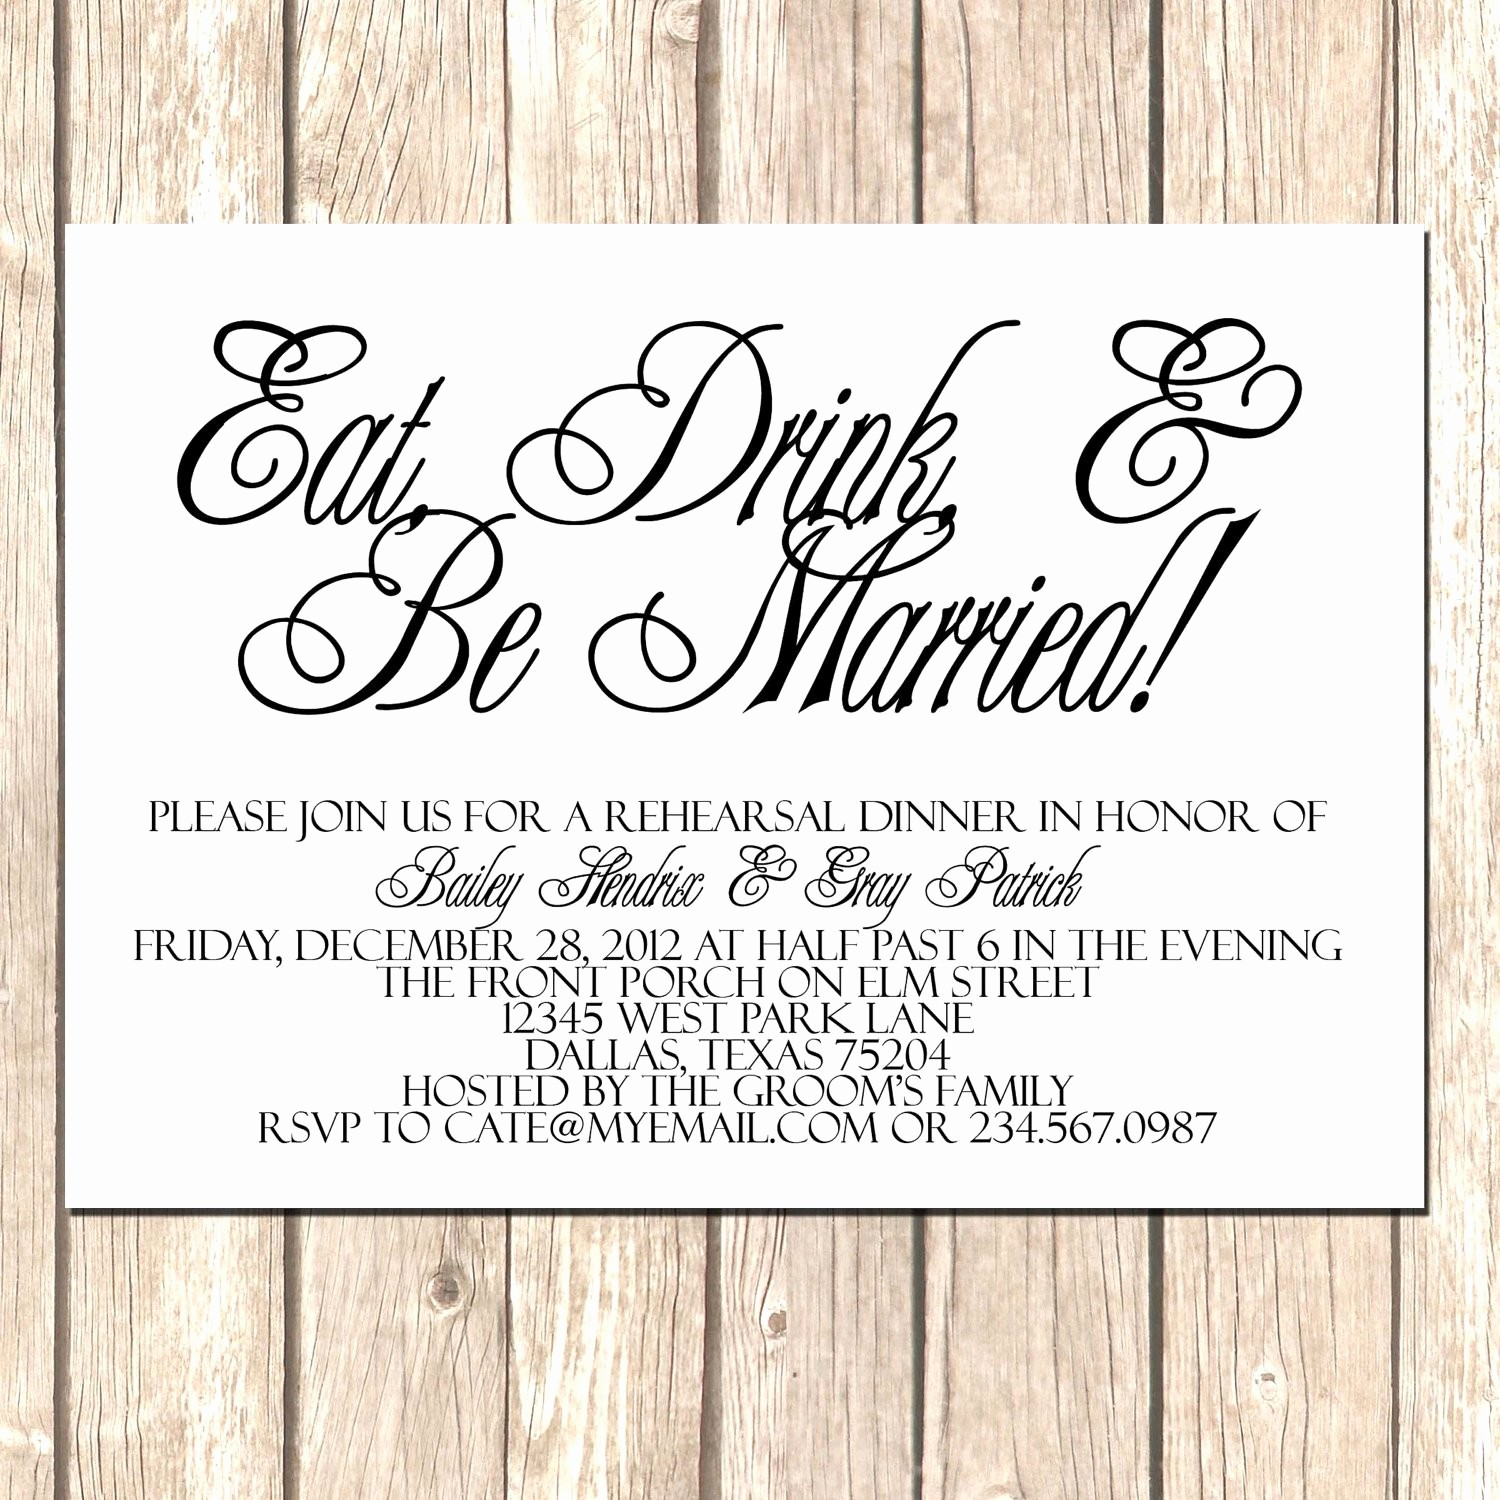 Wedding Response Card Template Free New Free Printable Wedding Response Card Template Free